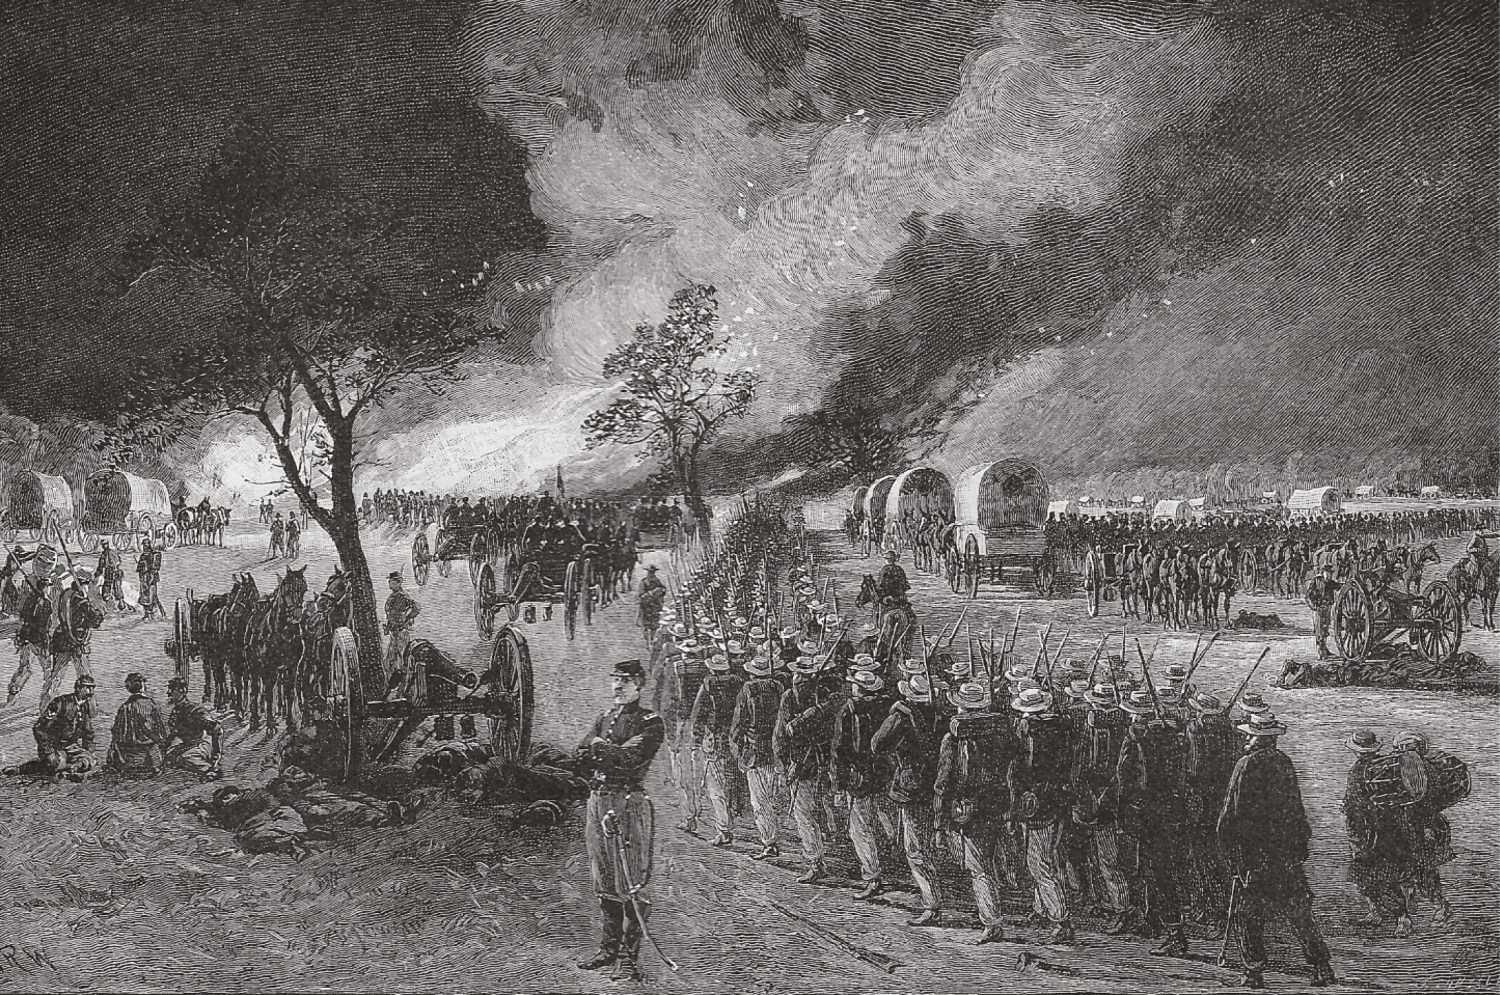 ABOVE McClellan's retreat from the Chickahominy River. The Confederates, outnumbered two to one, were falling back and on the brink of losing Richmond until Lee counter-attacked and McClellan went to pieces.